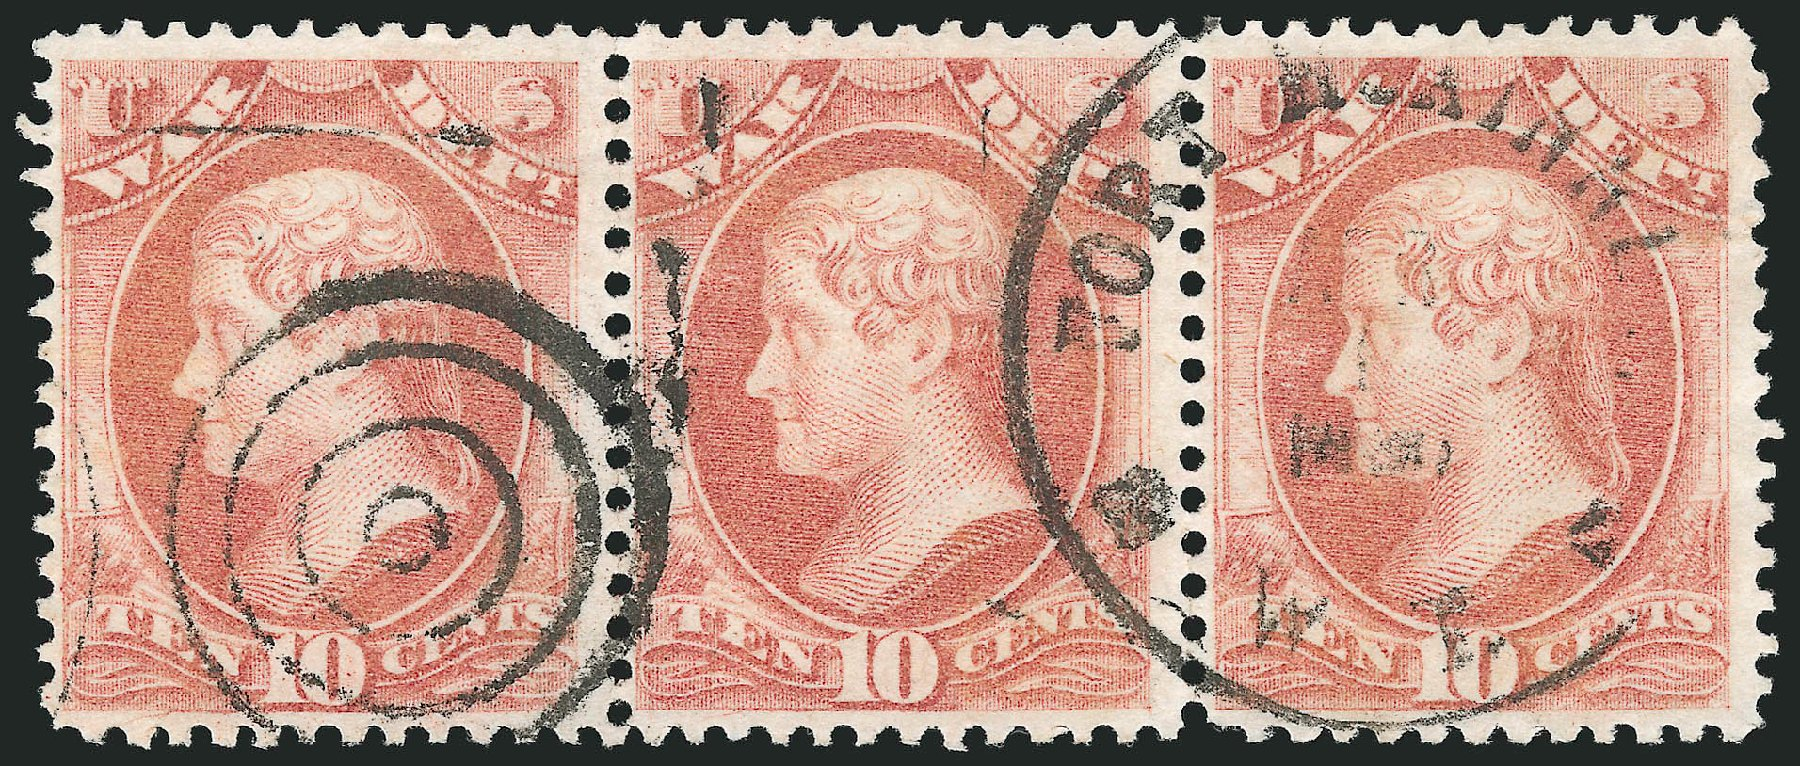 US Stamp Price Scott Catalog O88 - 10c 1873 War Official. Robert Siegel Auction Galleries, Nov 2014, Sale 1085, Lot 4162